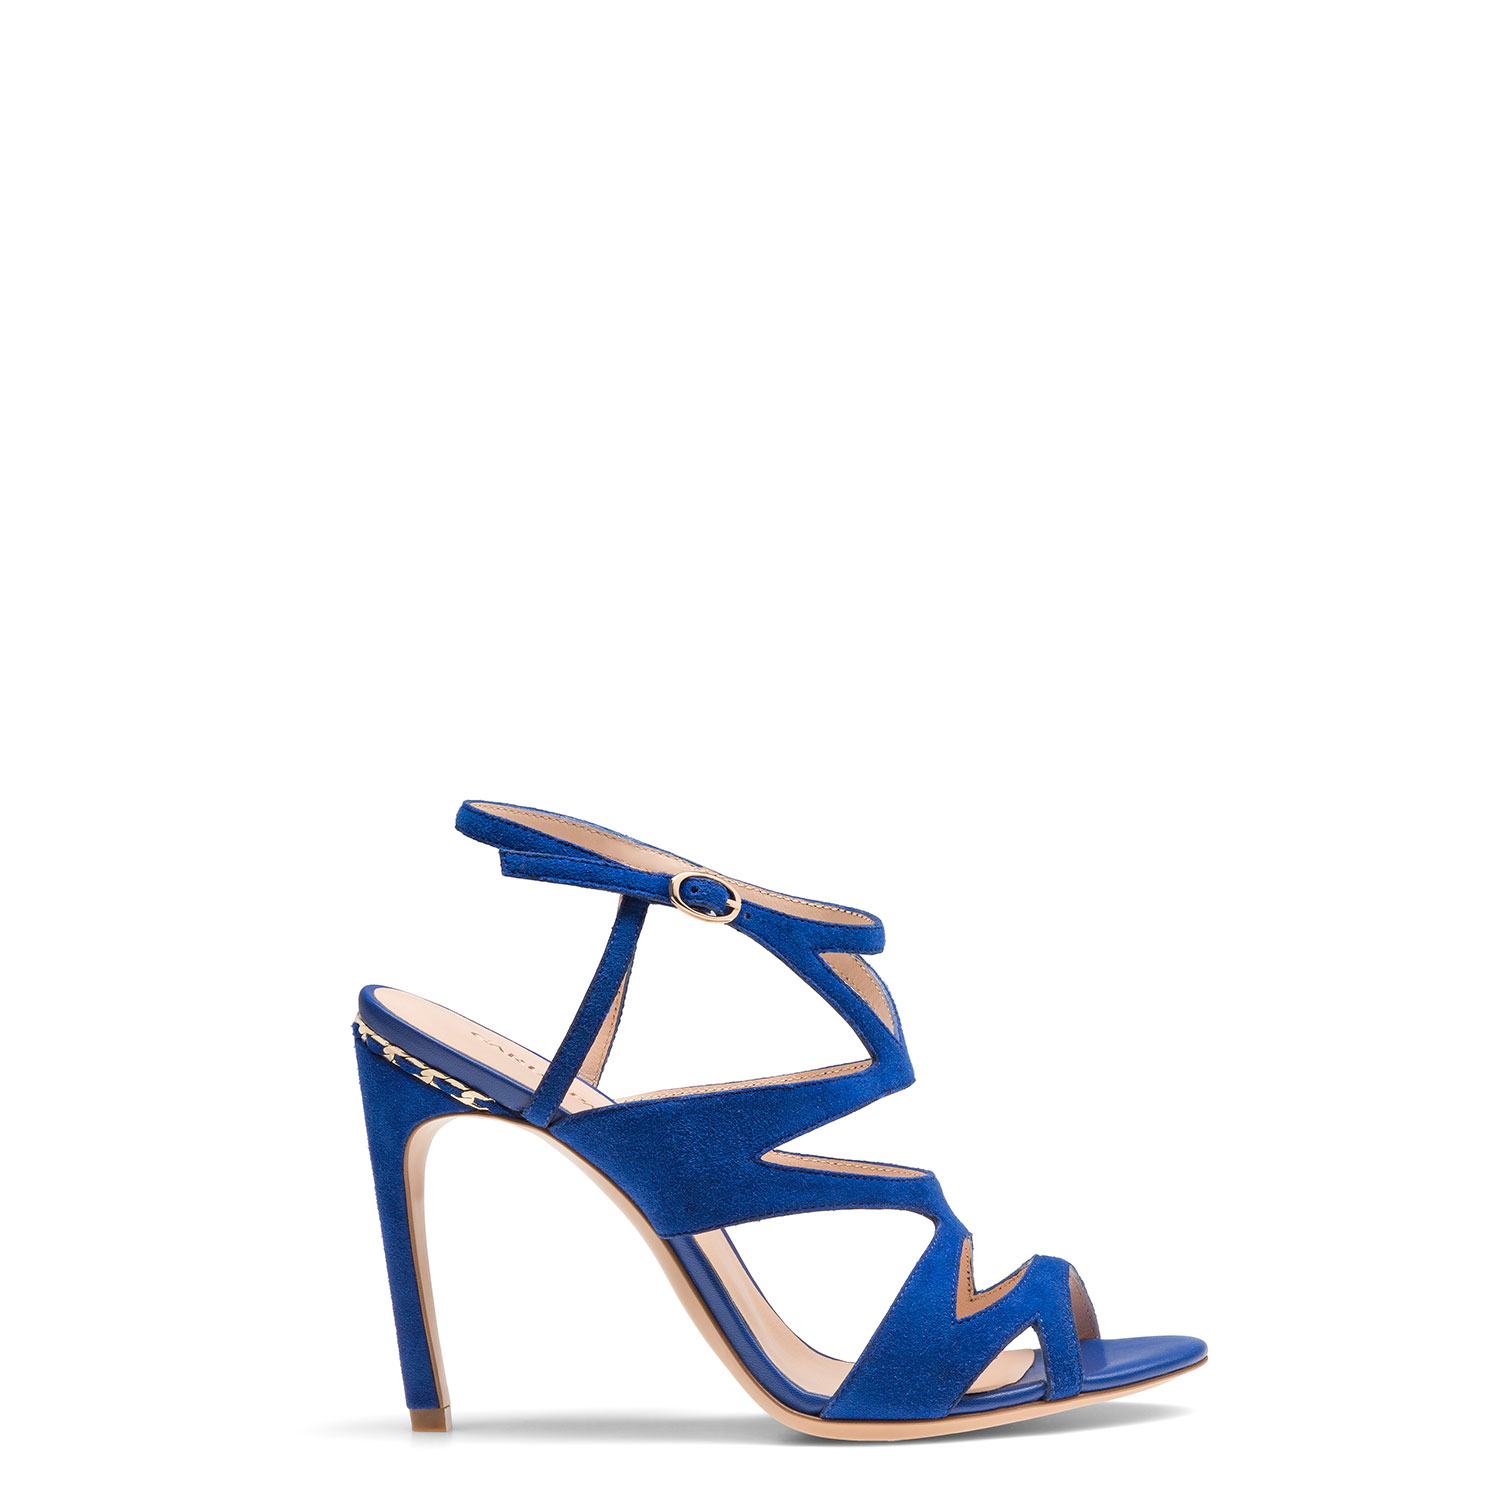 Women's sandals CARLO PAZOLINI FL-RUN1-6